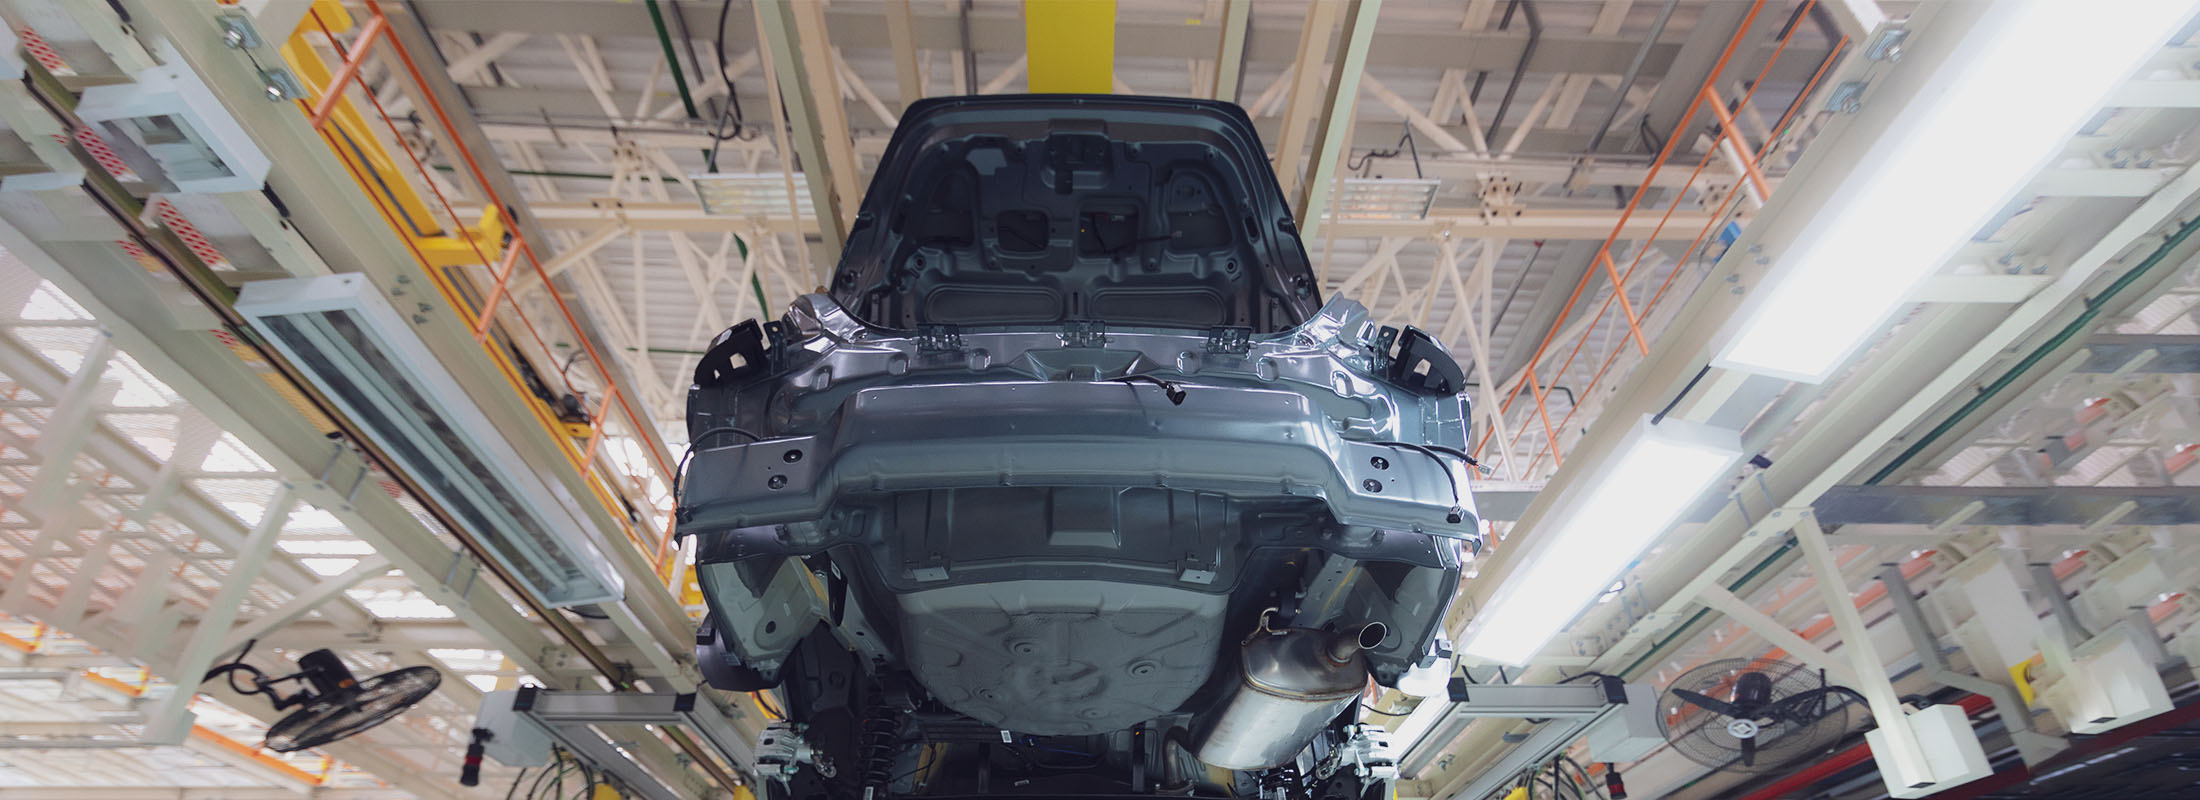 CPRO INDUSTRY SAP Branche Automobilindustrie